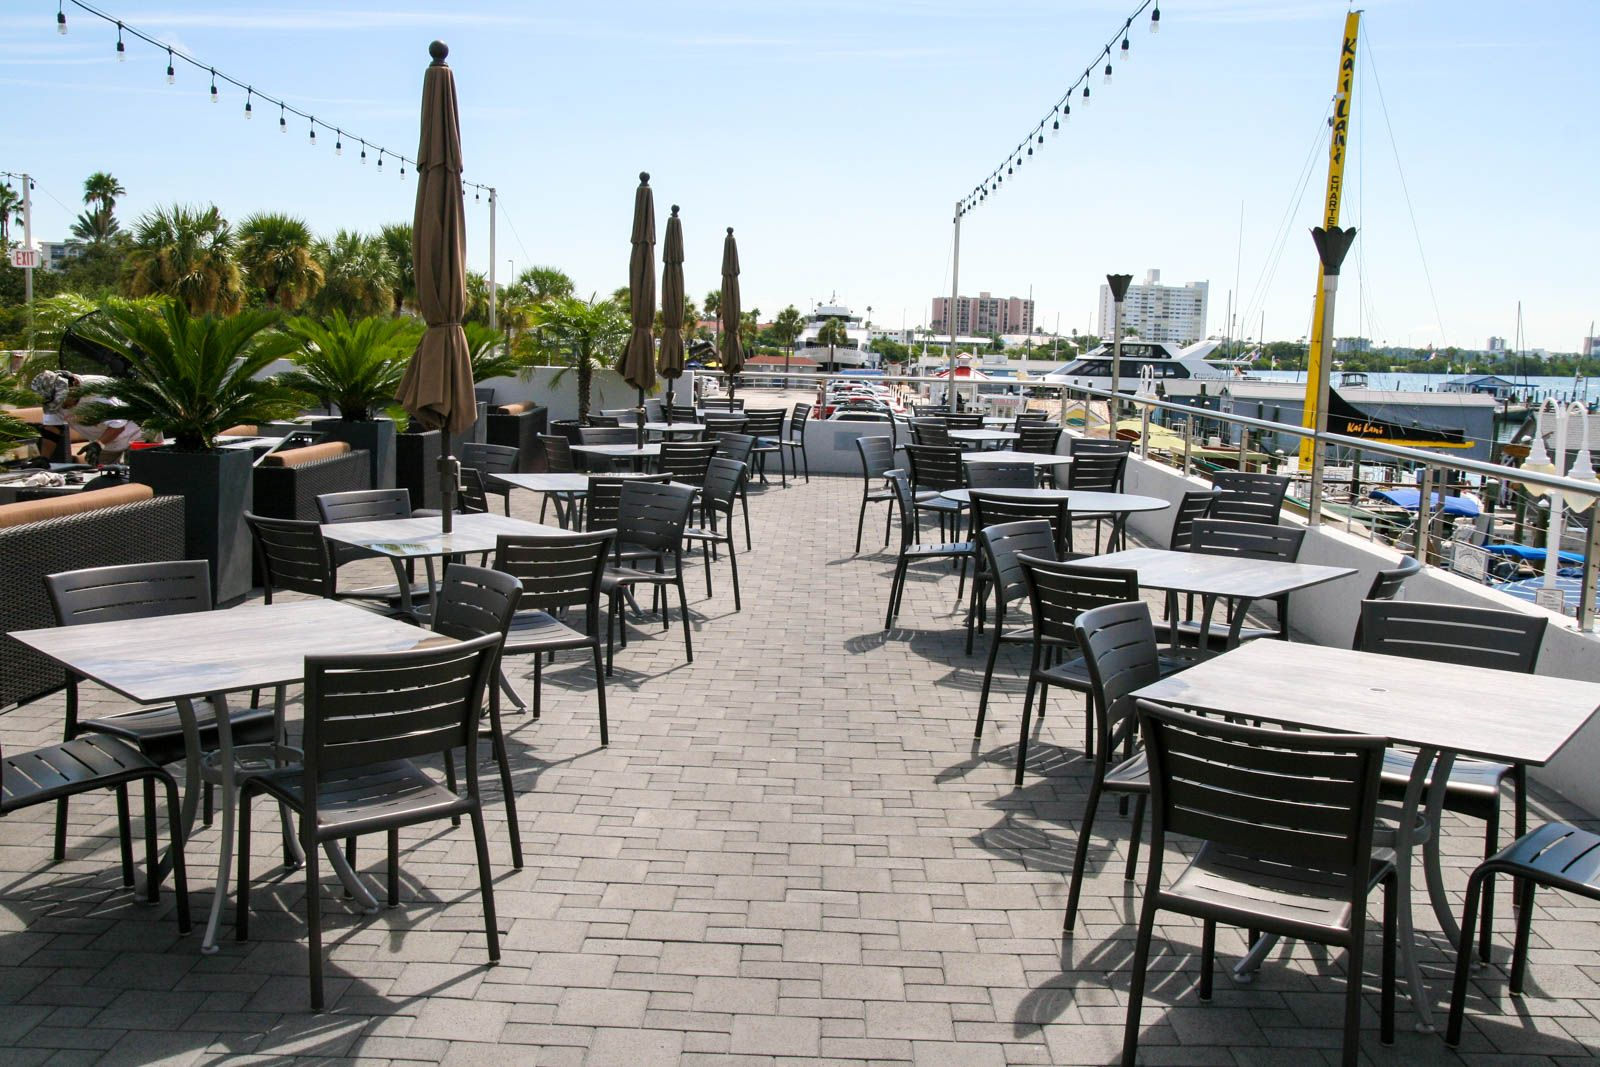 Commercial Outdoor Dining Furniture floridaseating #spaces #dining #outdoor #furniture #wood #metal